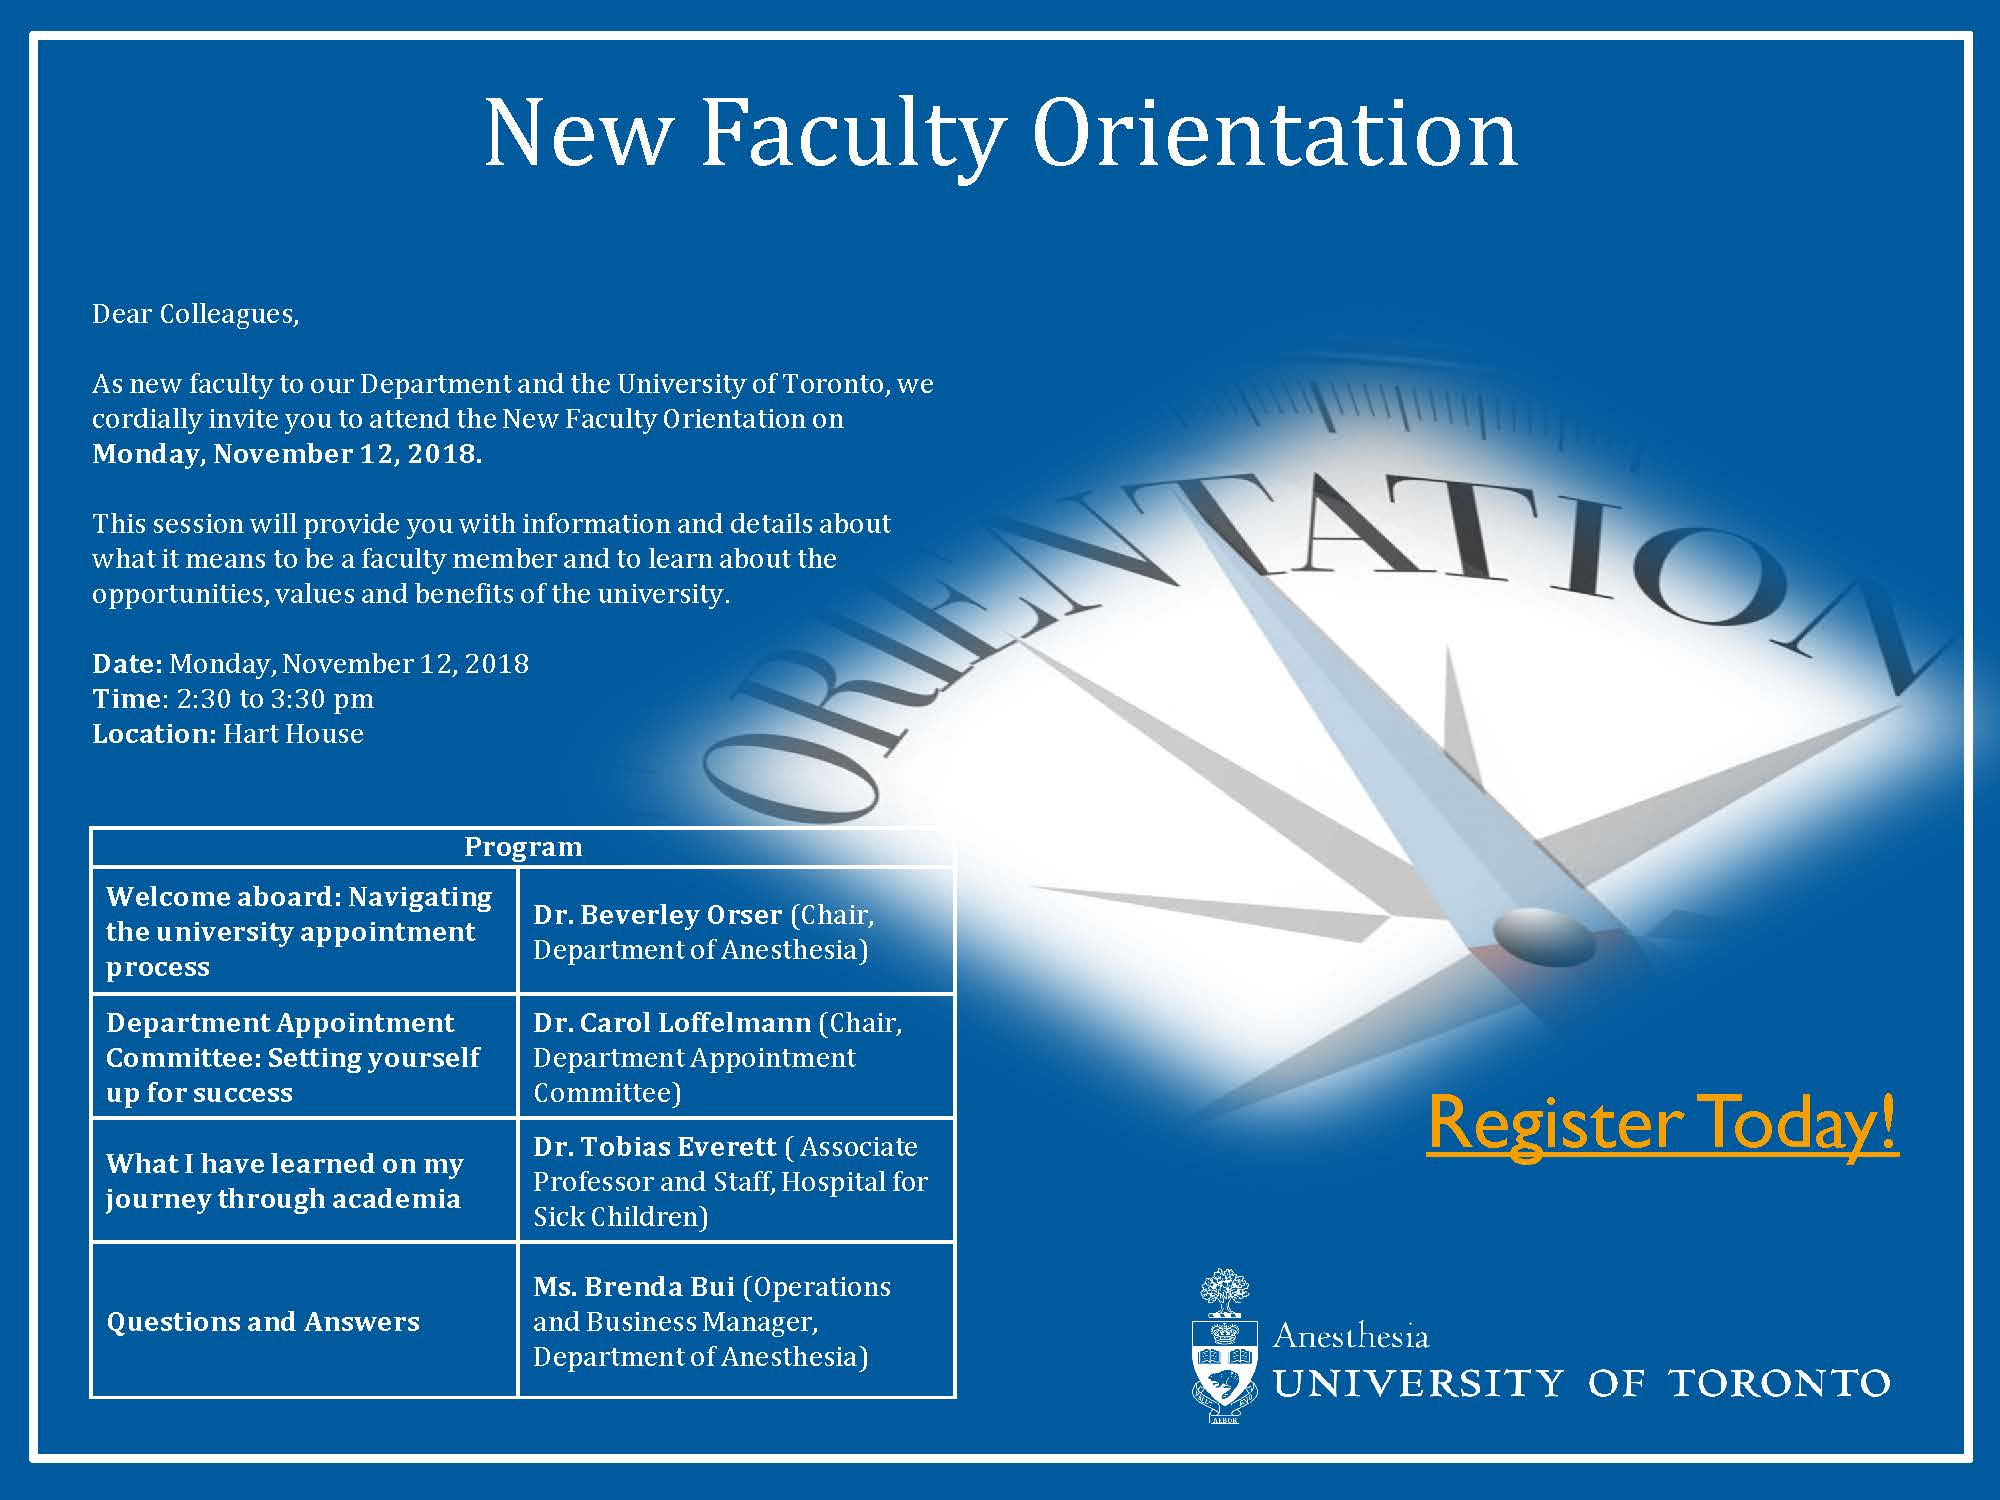 New Faculty Orientation Invitation.jpg